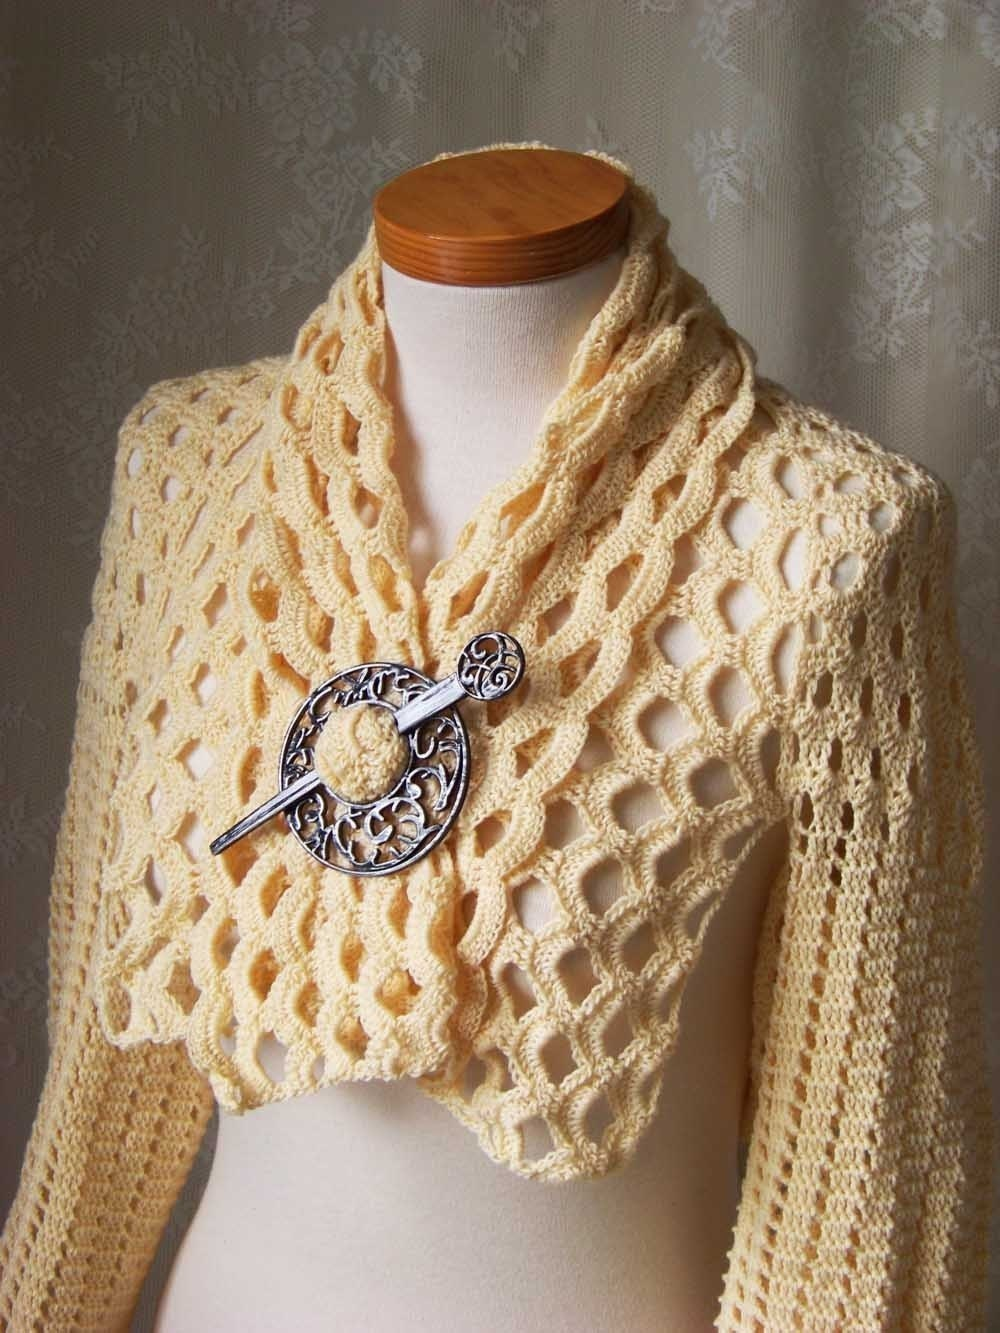 Crochet Shrug Pattern : 17 bolero shrug patterns knit or crochet with wool or cotton yarns